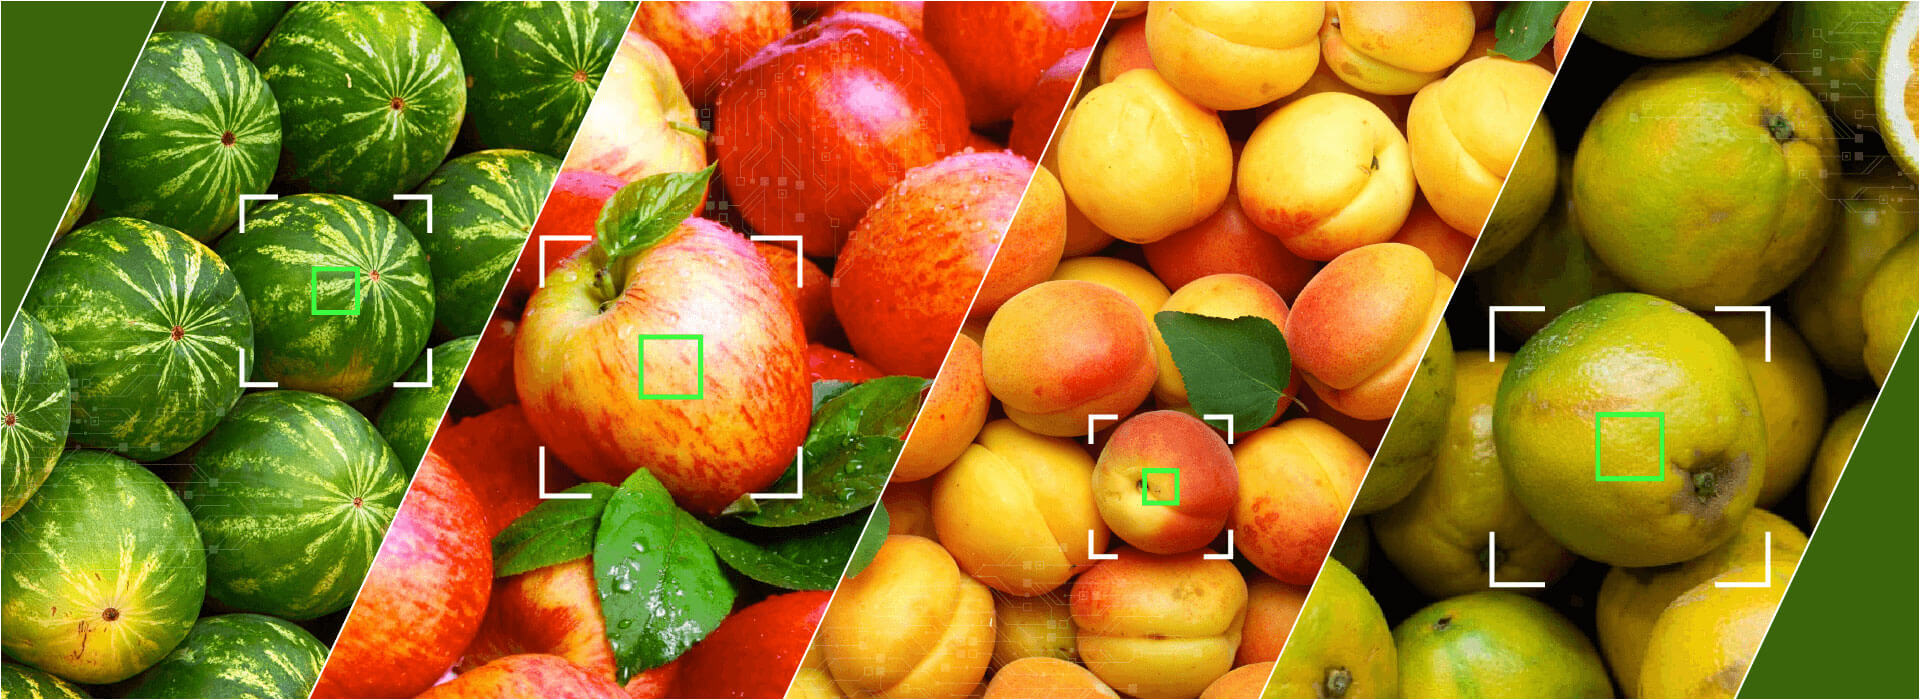 Visual quality inspection of fruits